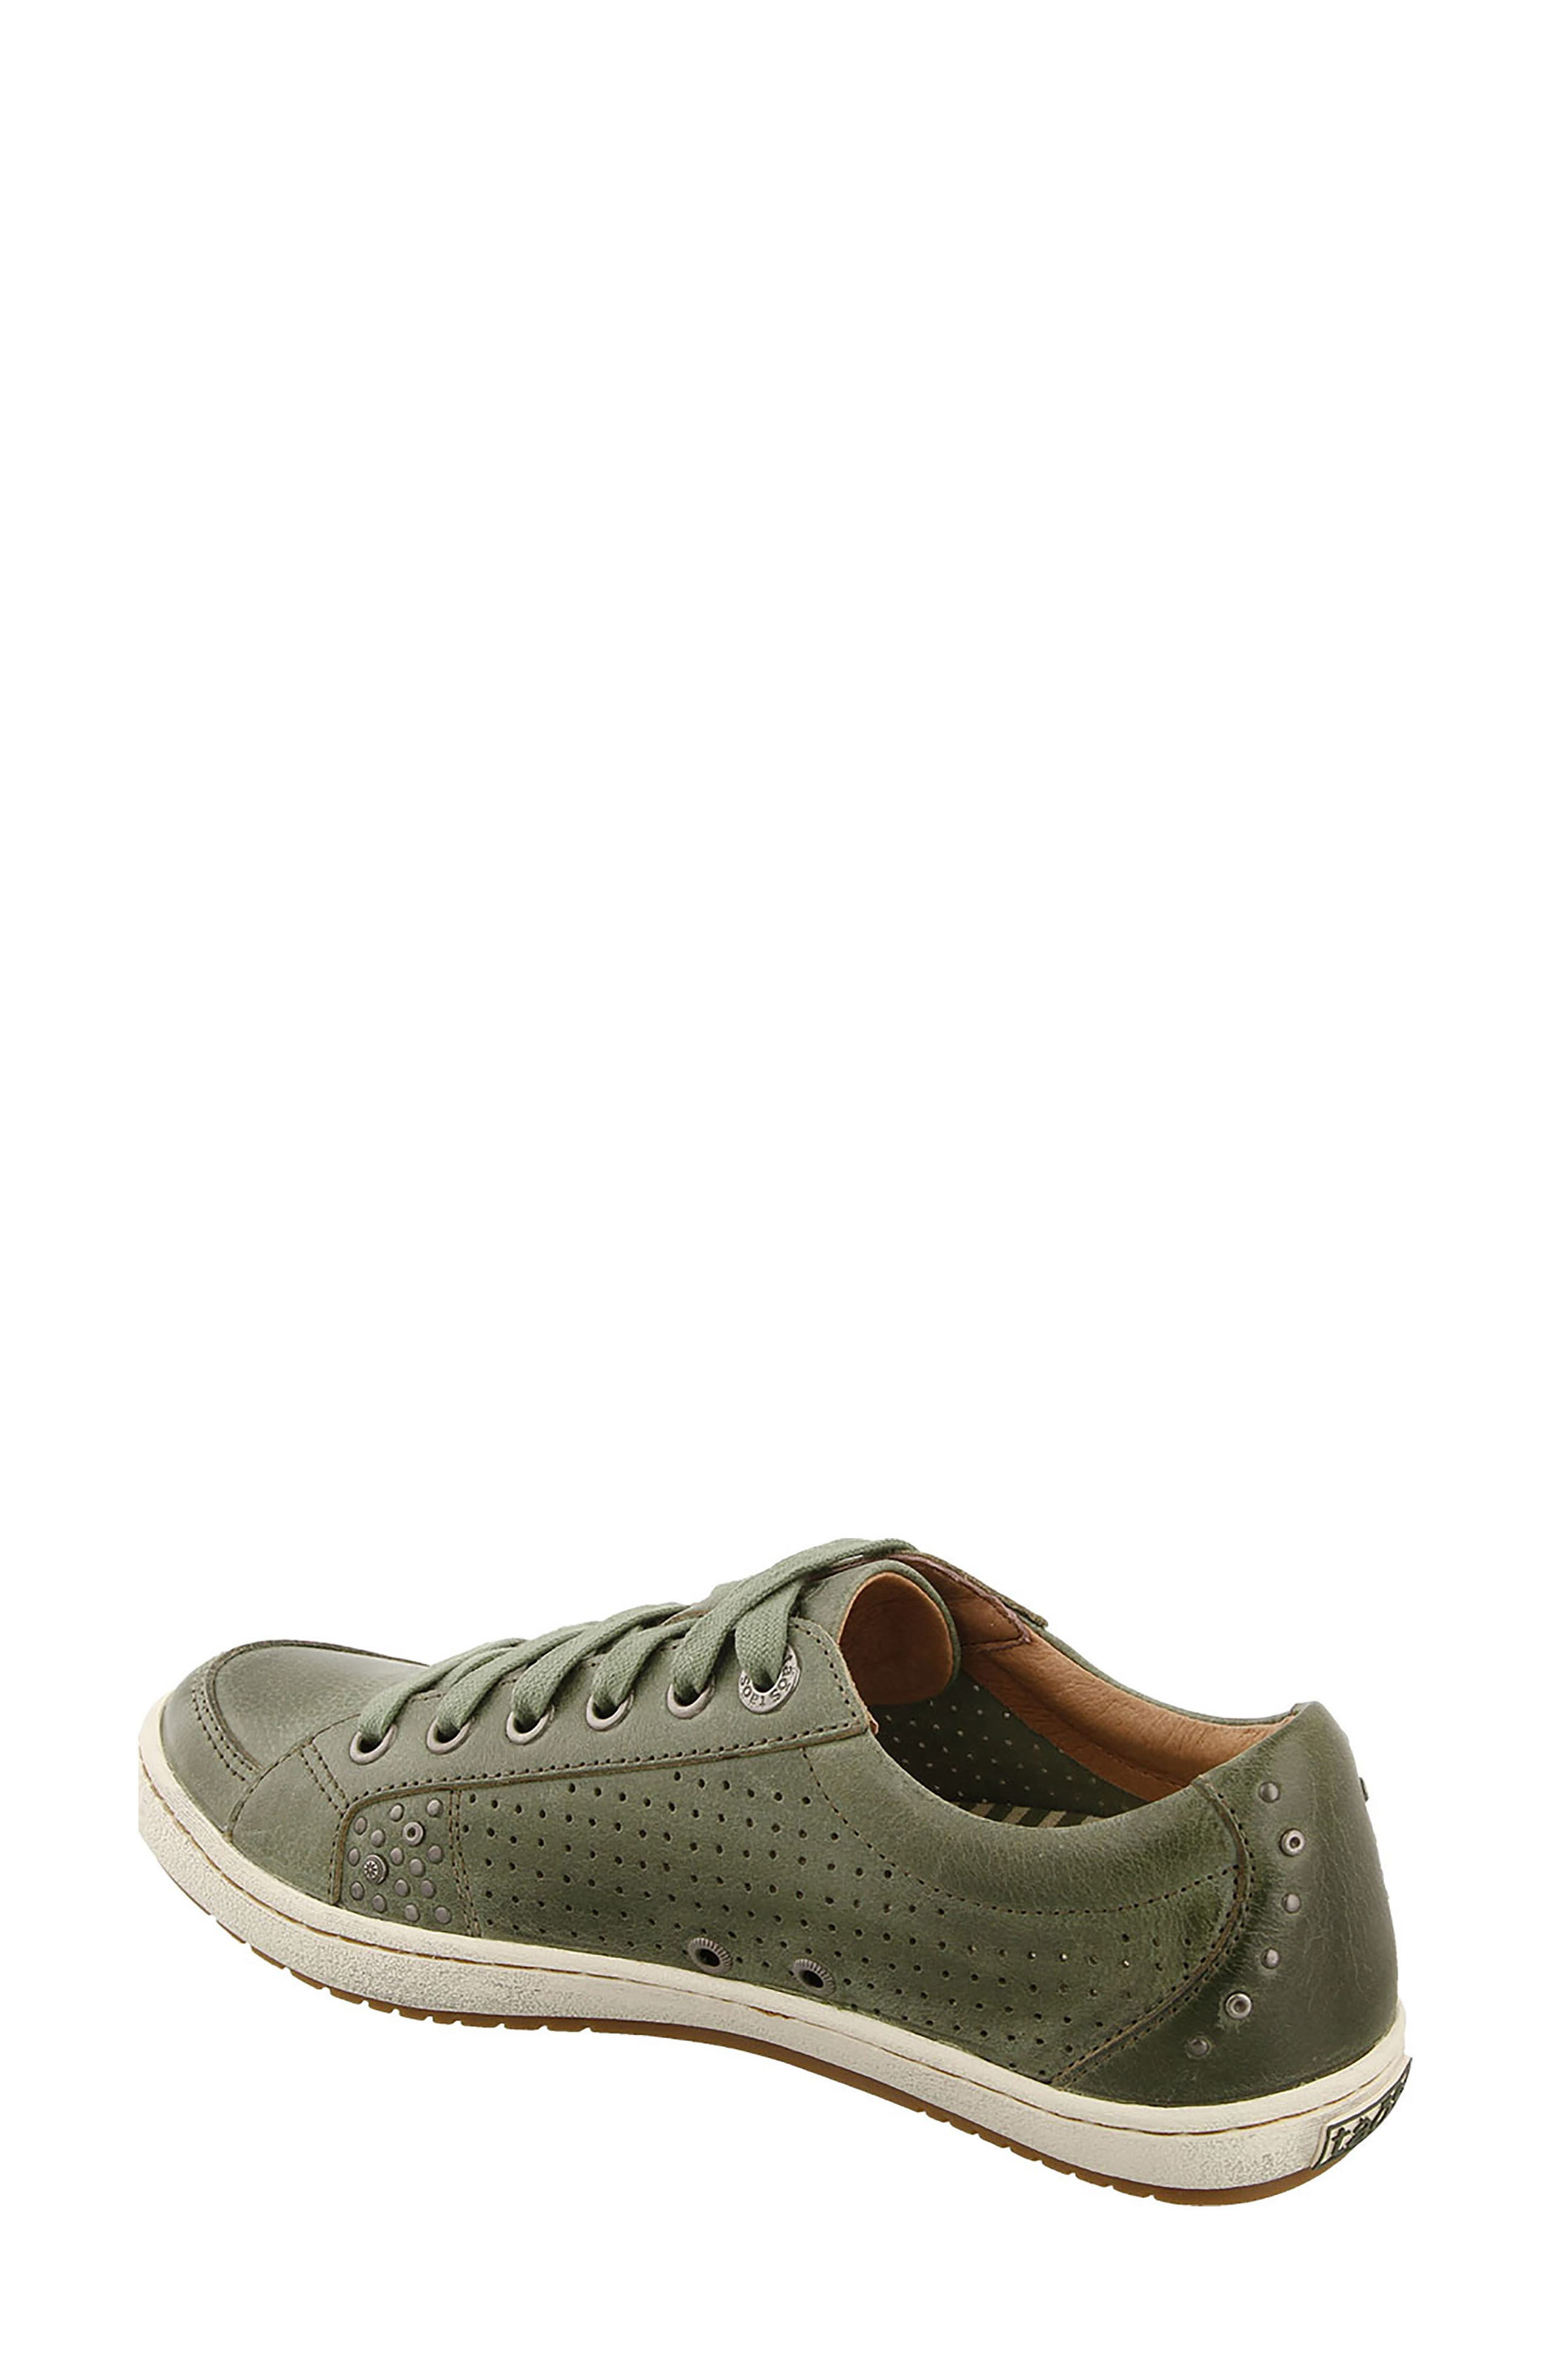 'Freedom' Sneaker,                             Alternate thumbnail 2, color,                             Sage Leather